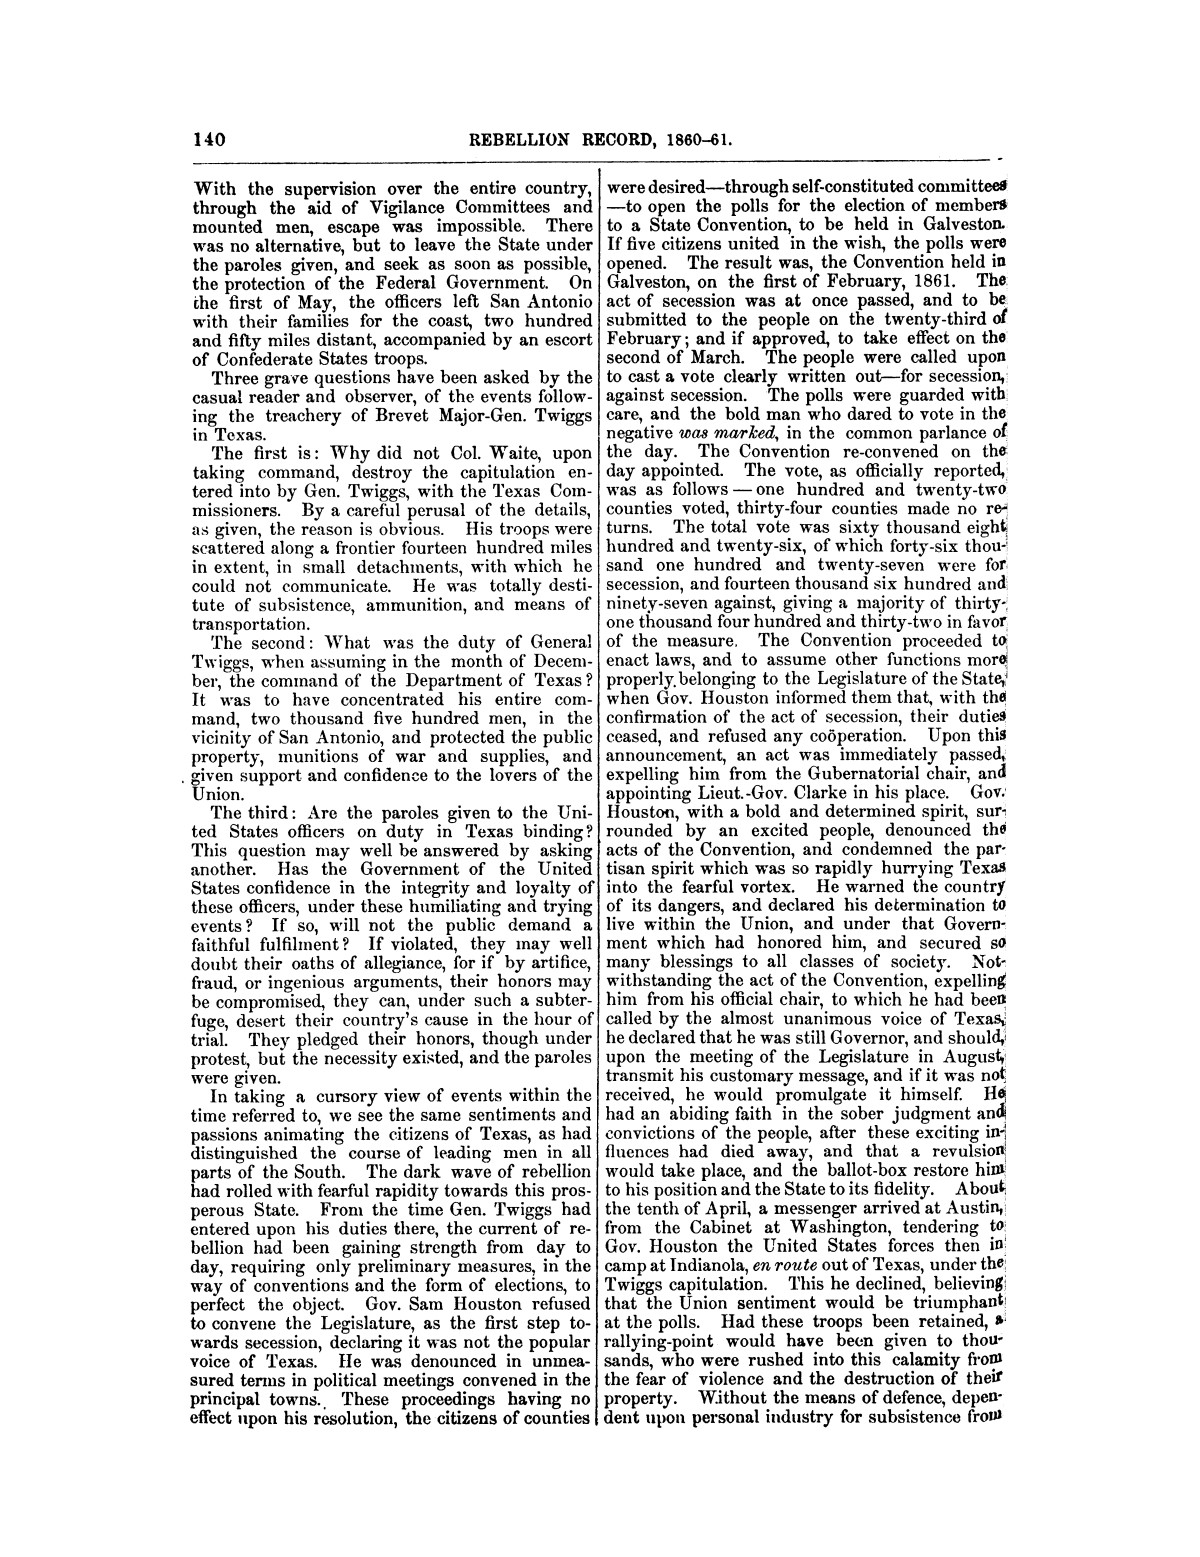 The treachery in Texas, the secession of Texas, and the arrest of the United States officers and soldiers serving in Texas. Read before the New-York Historical Society, June 25, 1861. By Major J. T. Sprague, U. S. A.                                                                                                      [Sequence #]: 34 of 36